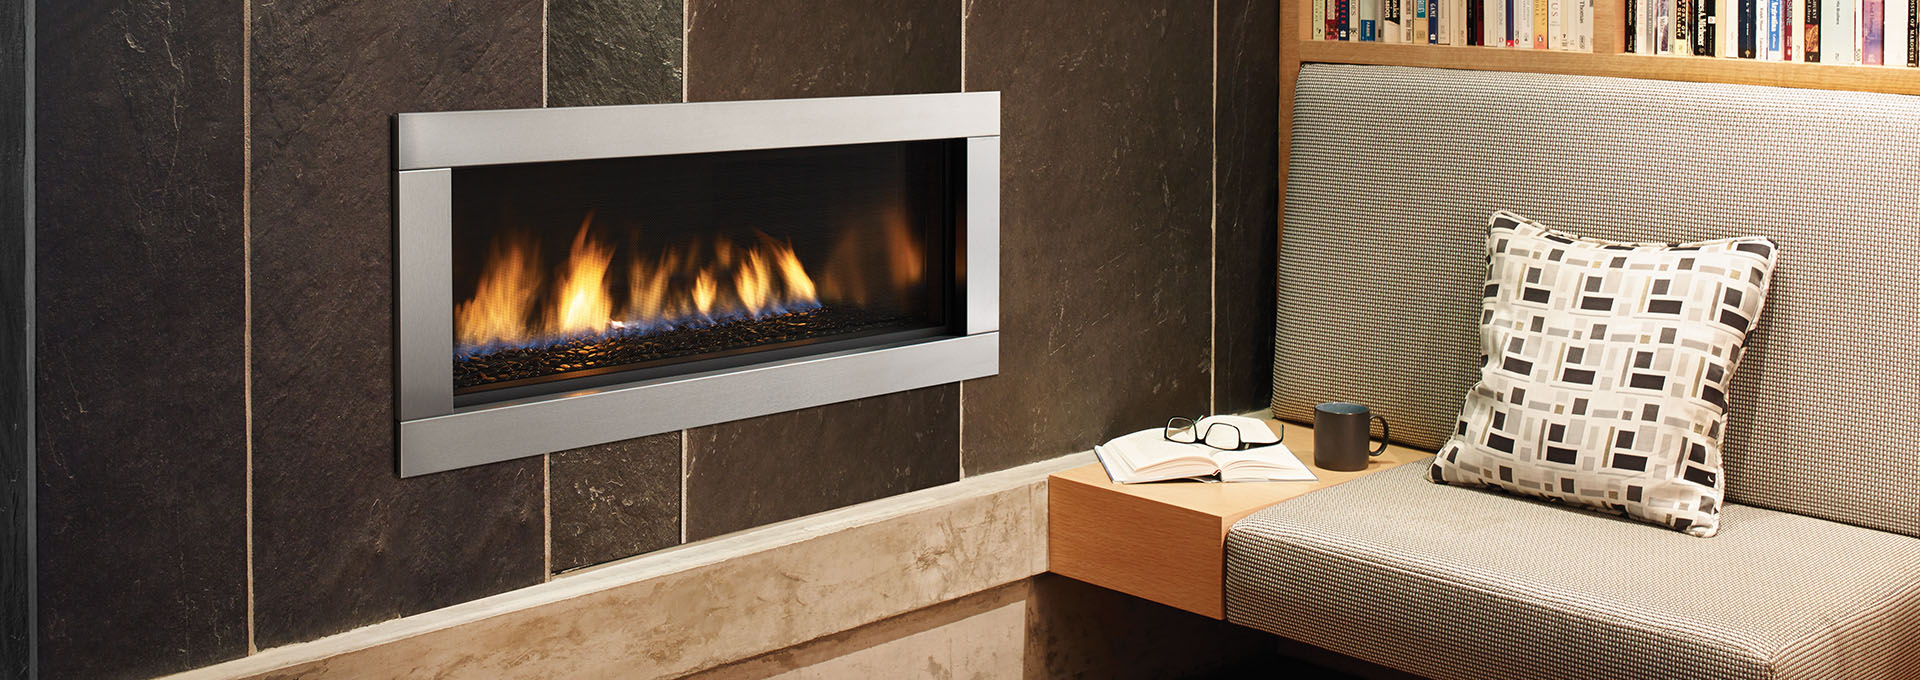 Regency Horizon HZ30E Contemporary Gas Fireplace  Toronto Best Price